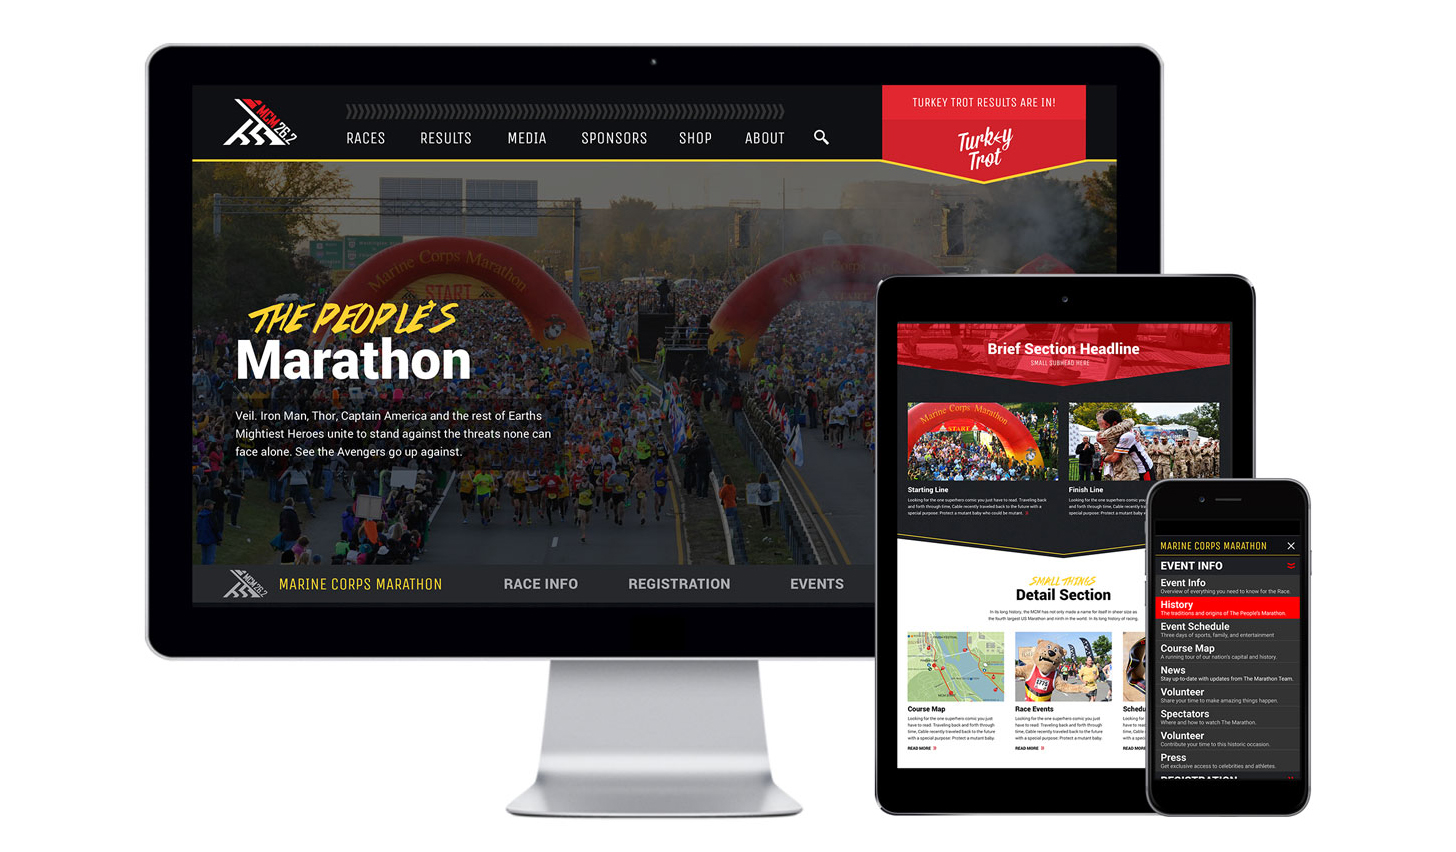 nclud launches Marine Corps Marathon website